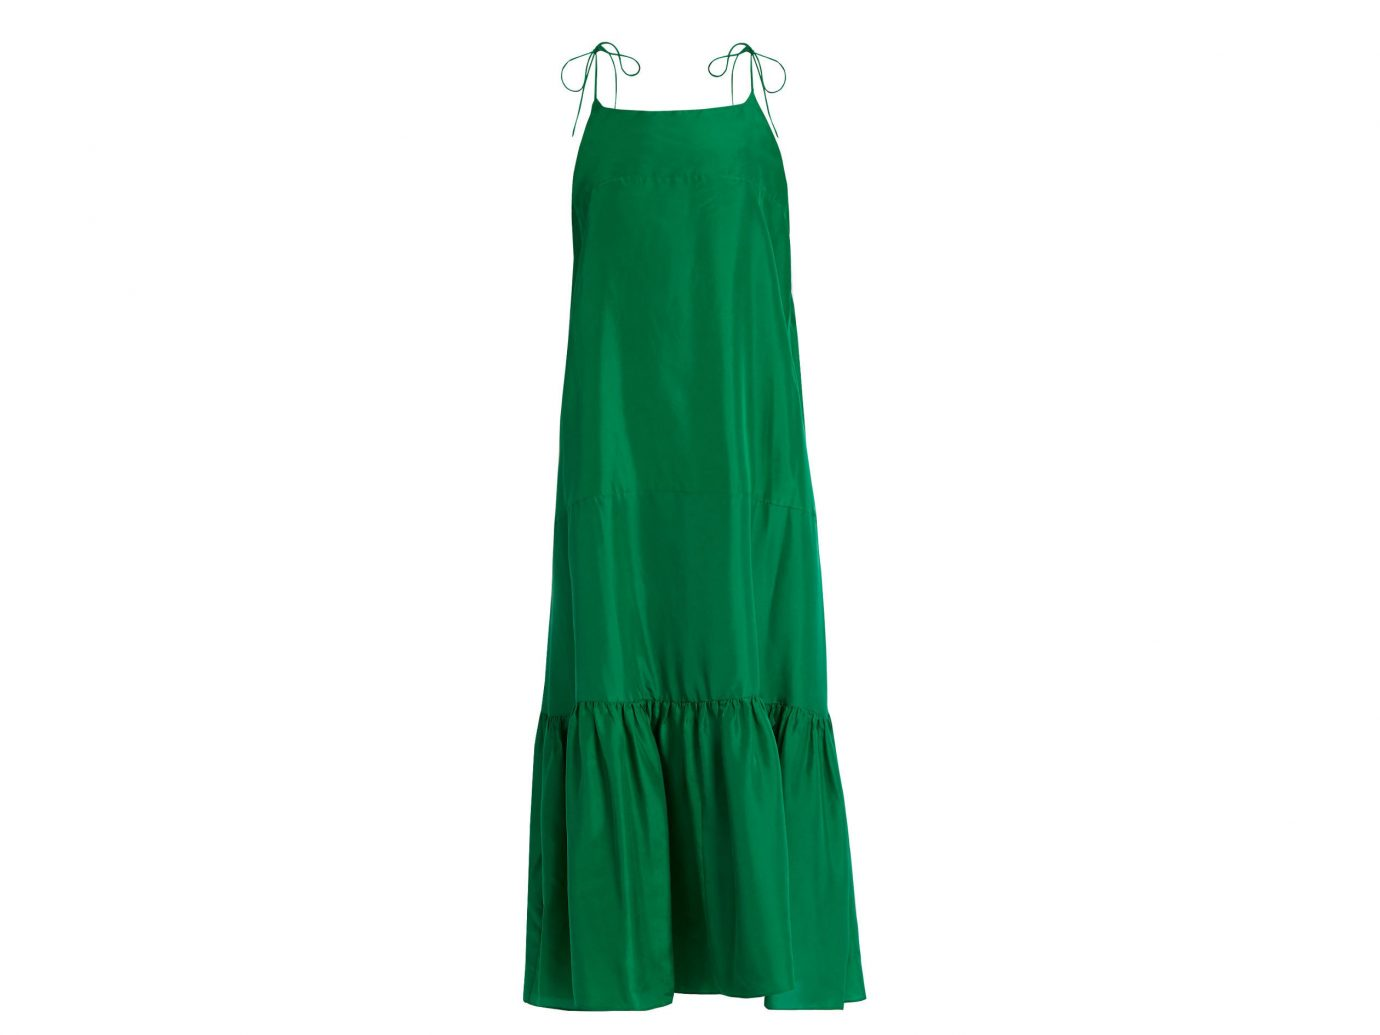 Style + Design Travel Shop day dress clothing green dress skirt waist active pants joint trouser